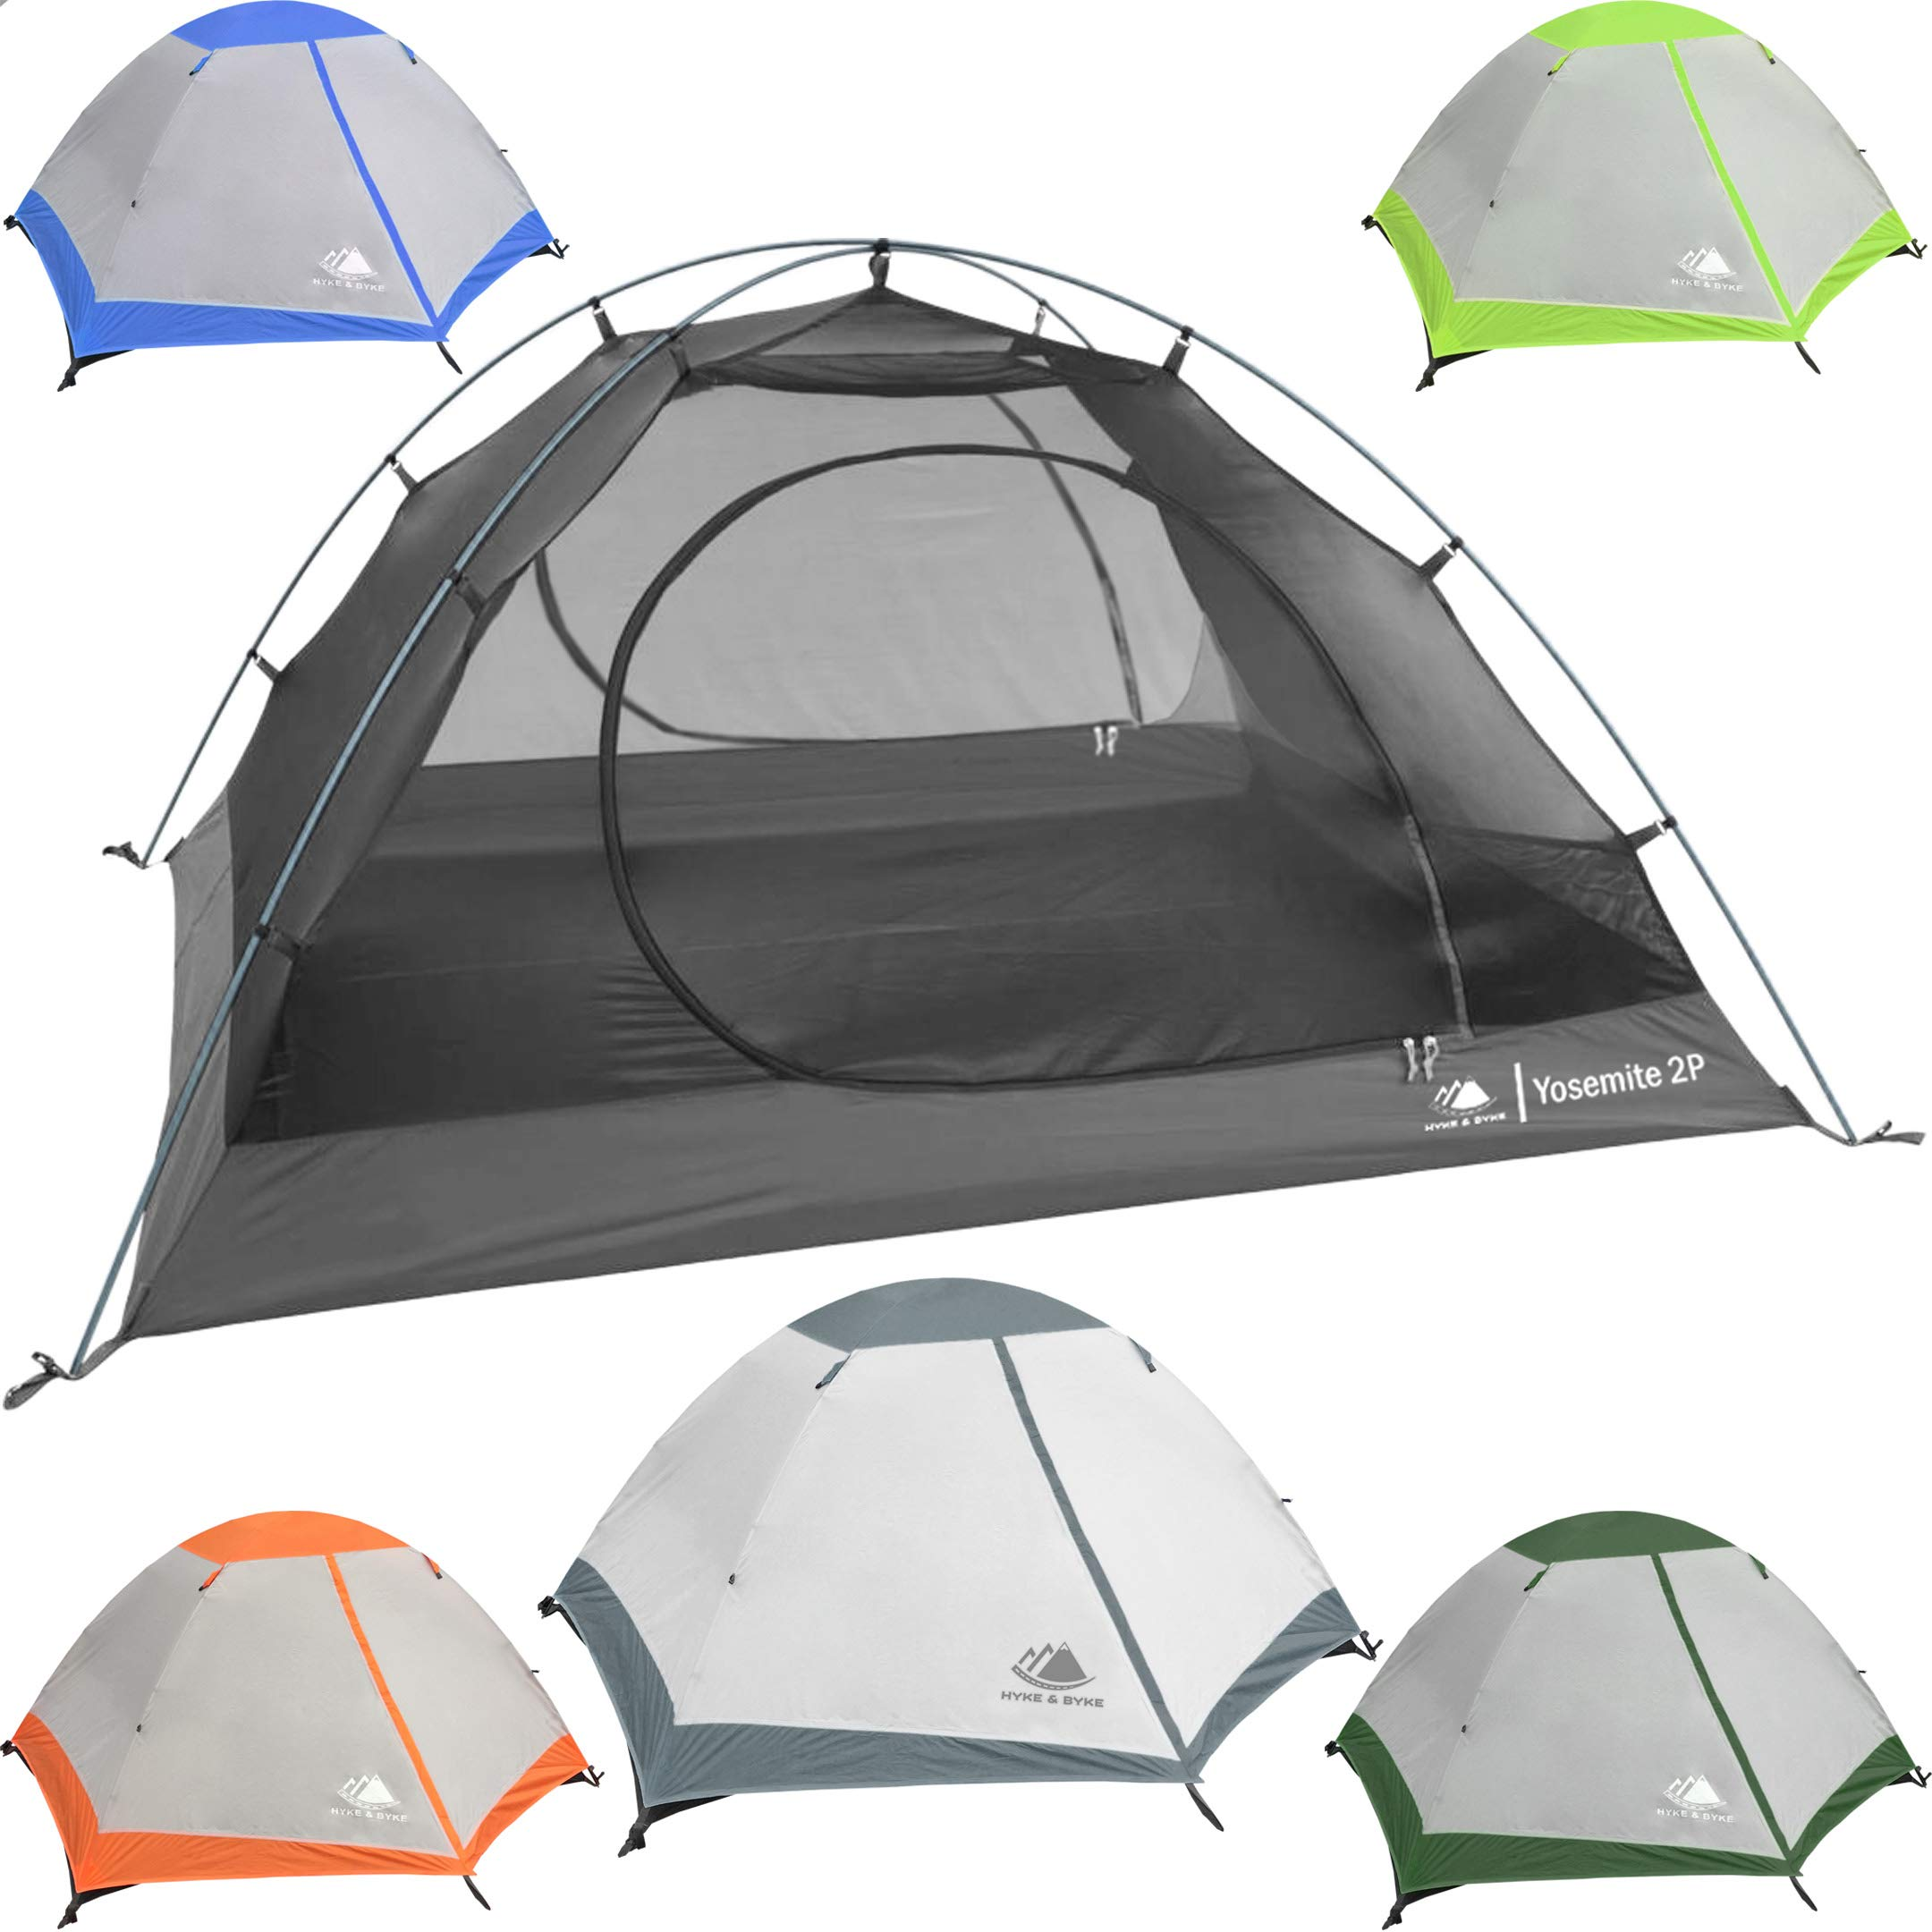 Hyke & Byke 2 Person Backpacking Tent with Footprint - Lightweight Yosemite Two Man 3 Season Ultralight, Waterproof, Ultra Compact 2p Freestanding Backpack Tents for Camping and Hiking (White) by Hyke & Byke